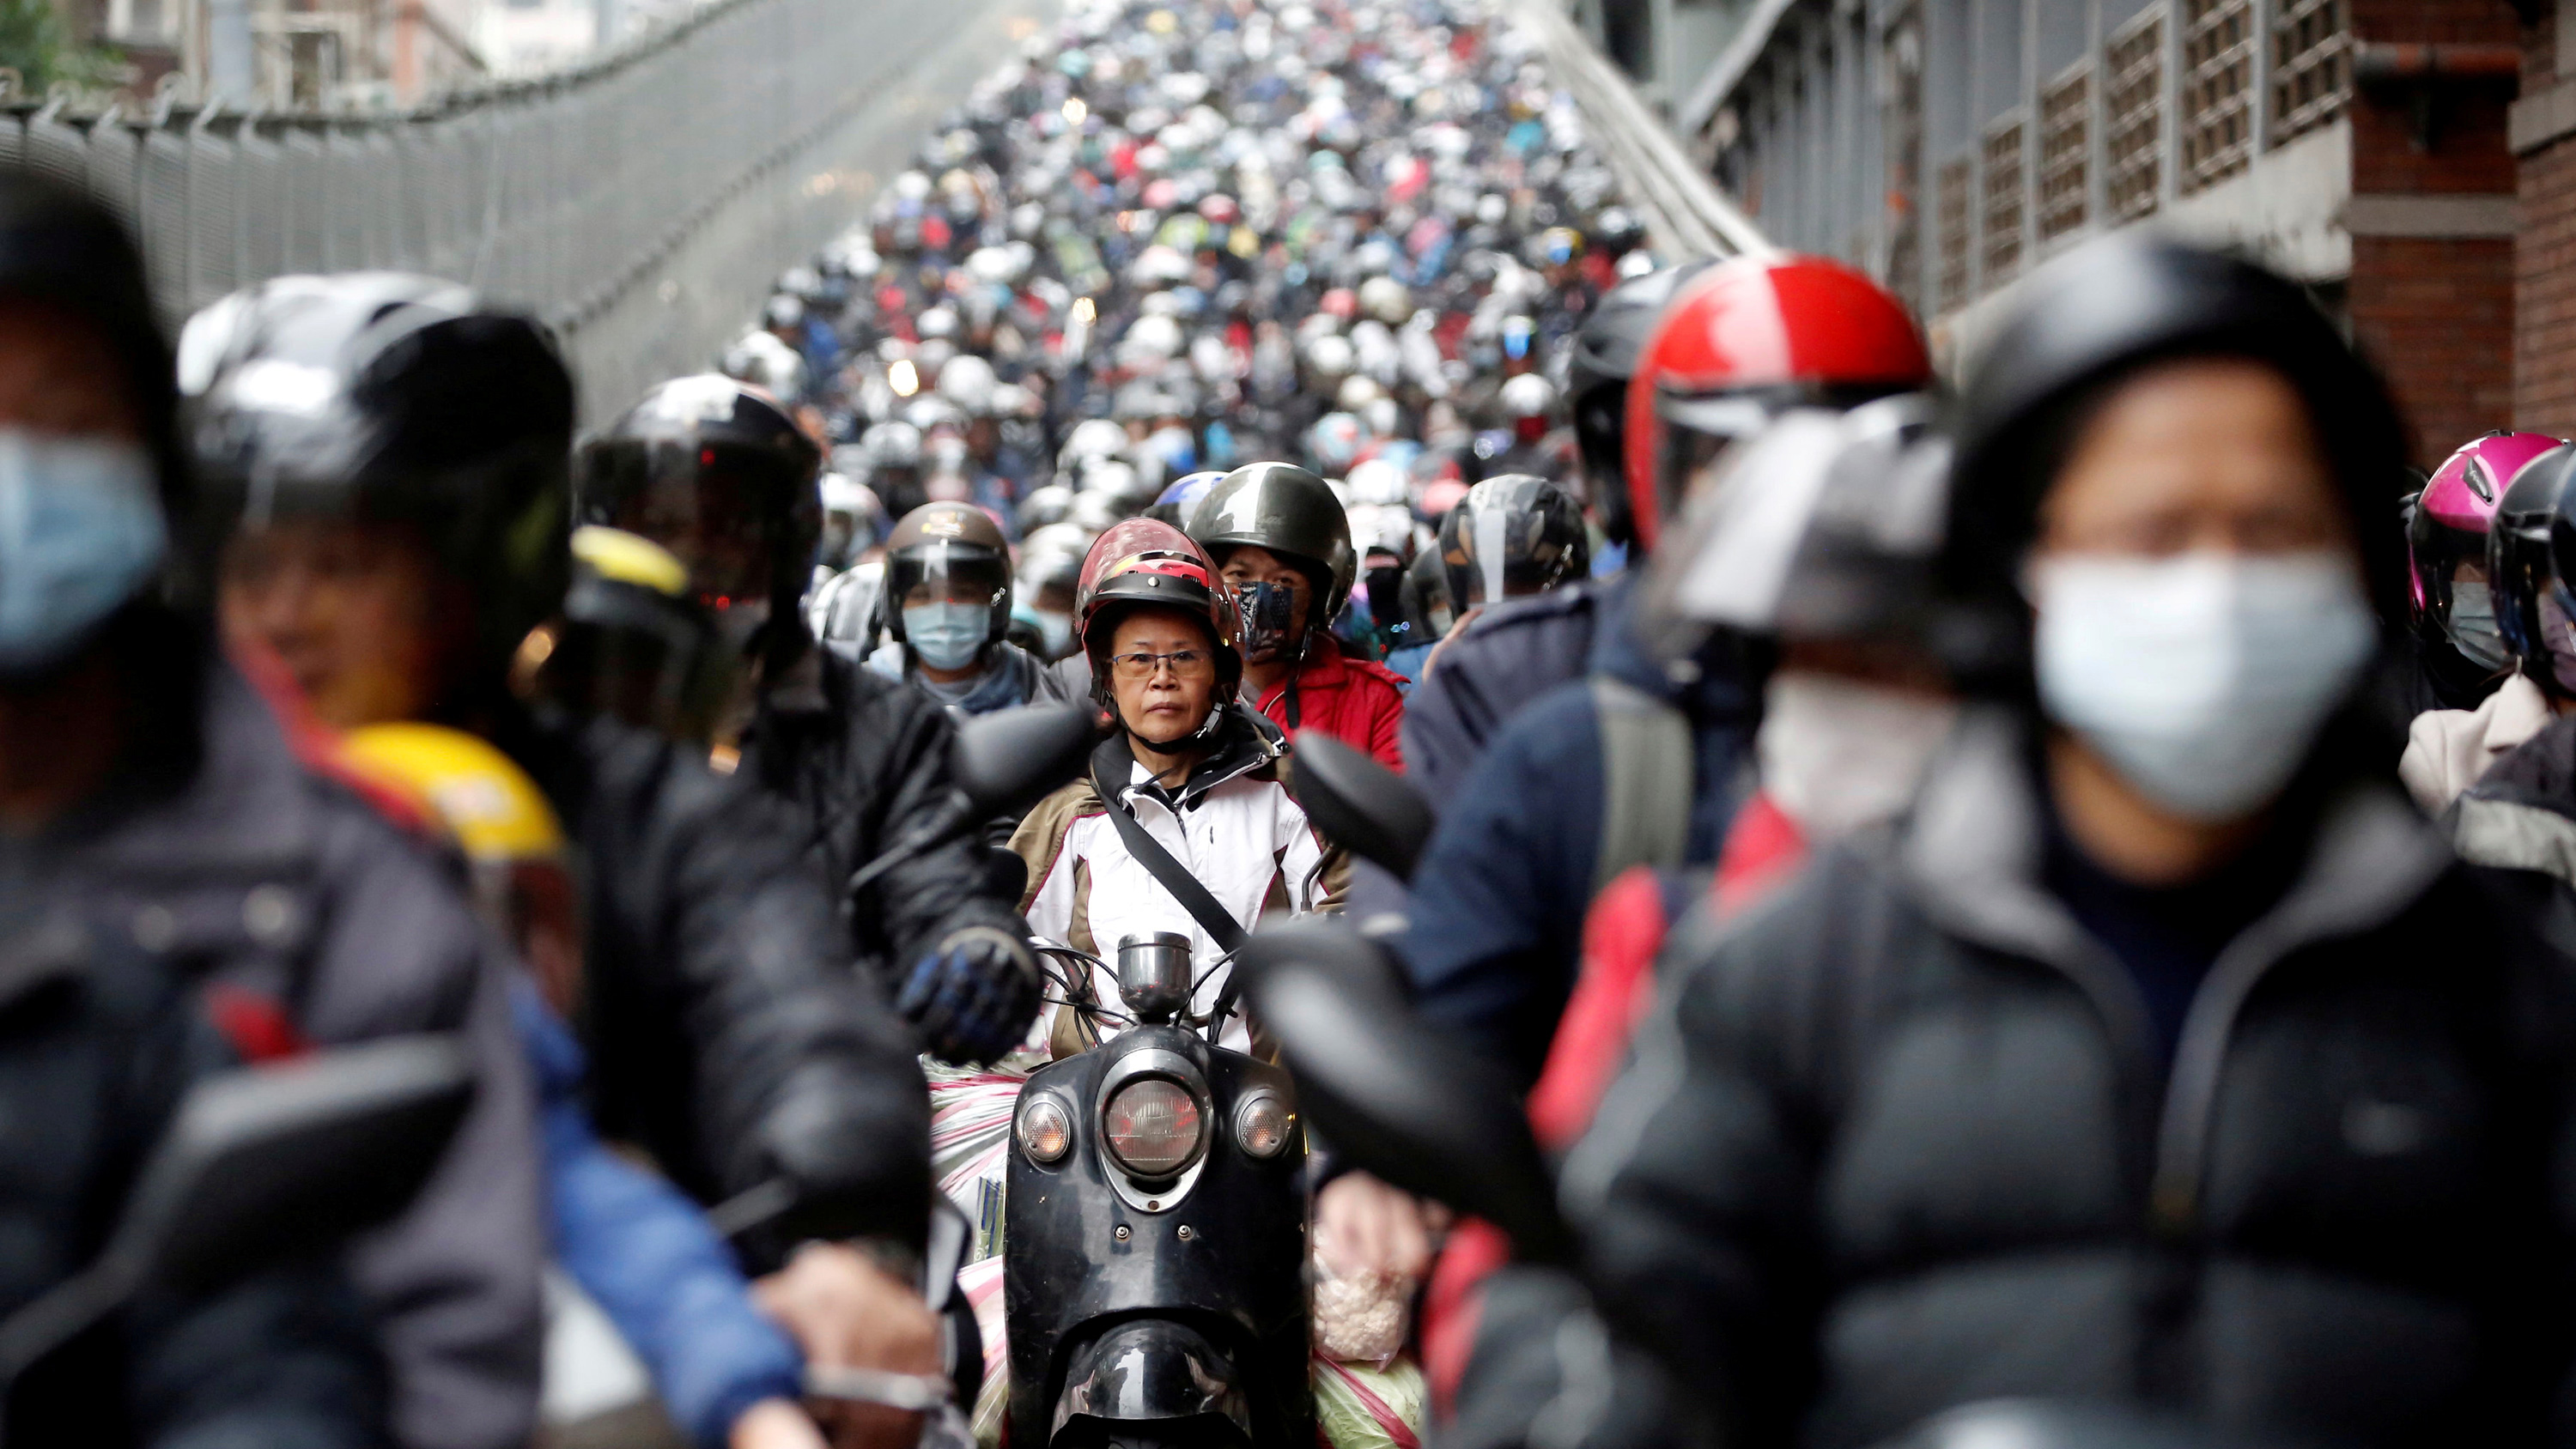 The photo shows a wide avenue filled with motorcycles heading toward the camera lens.